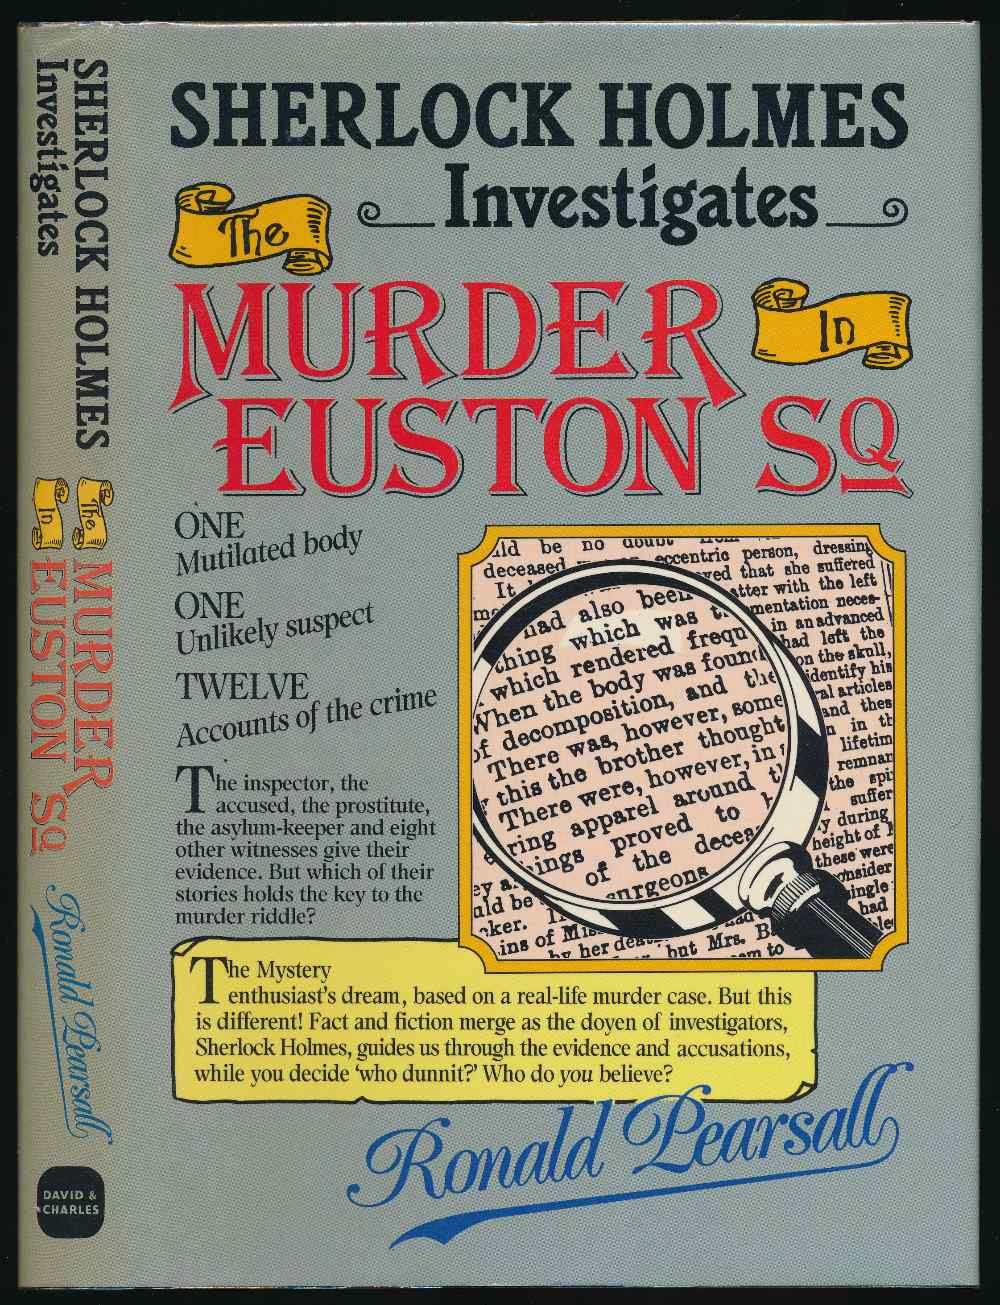 Sherlock Holmes investigates the murder in Euston Square